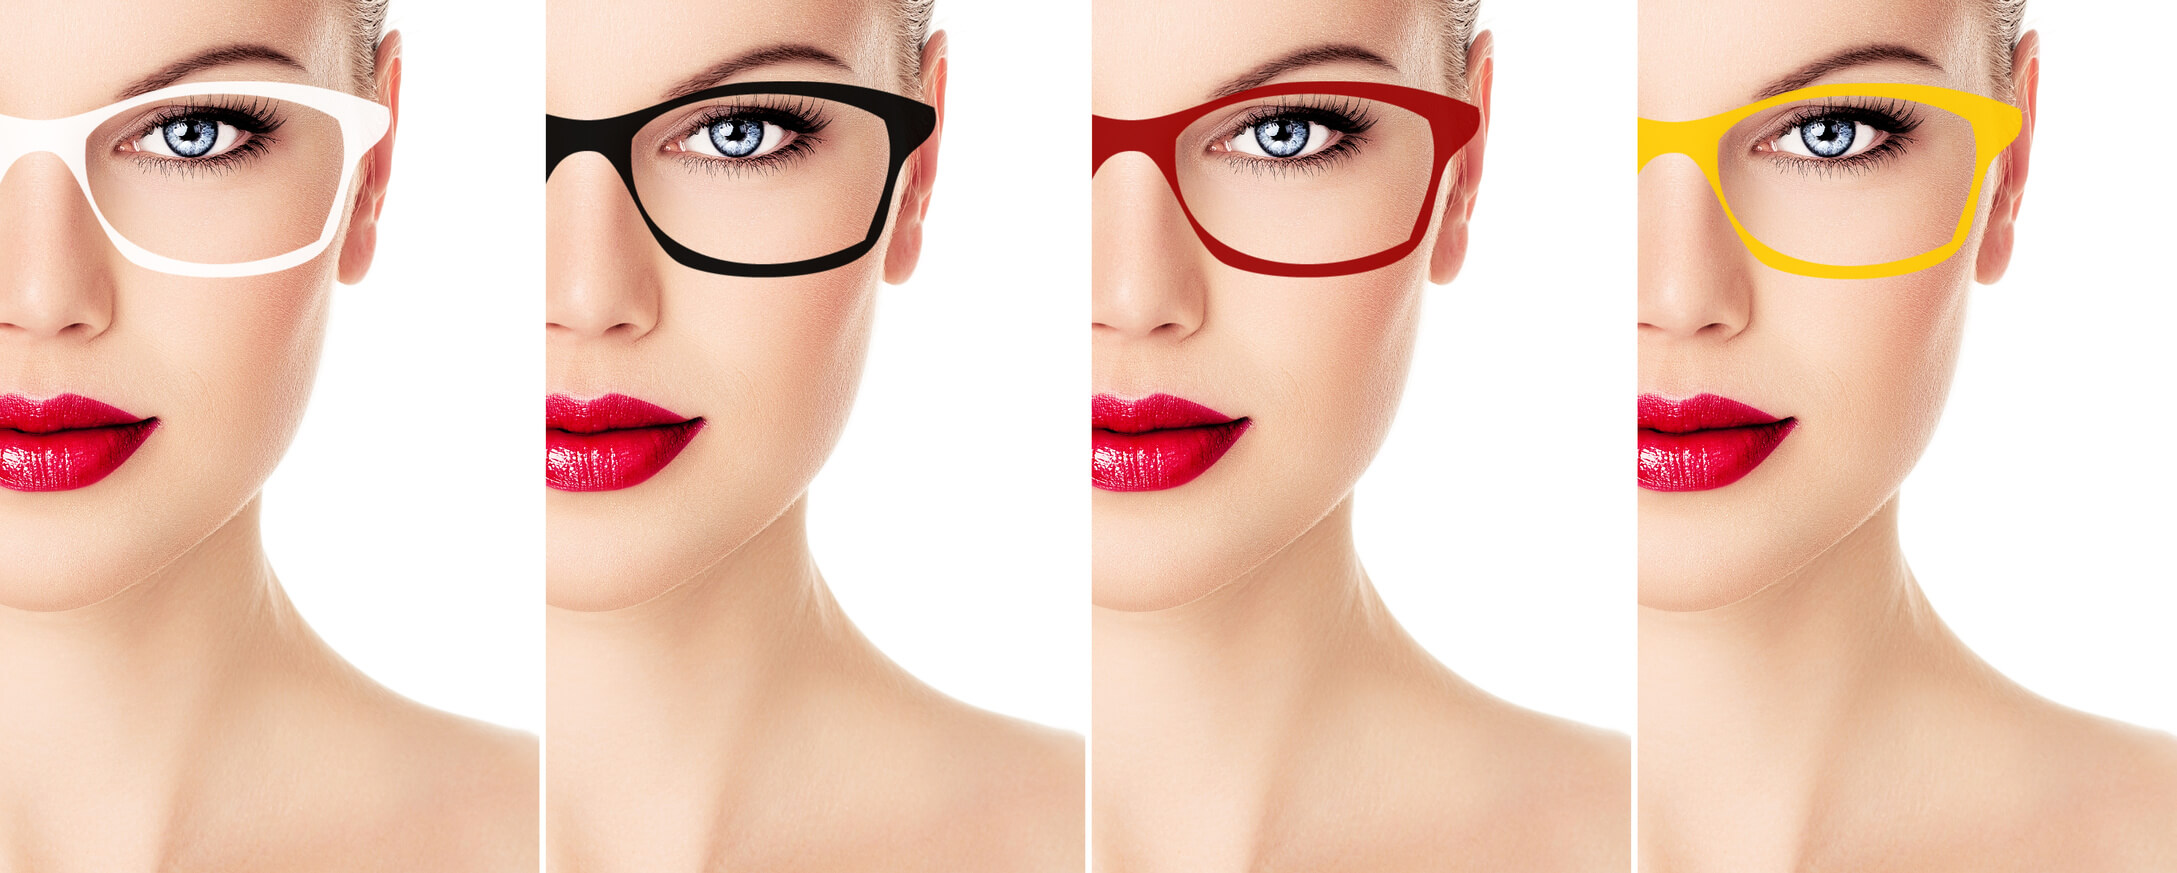 How to Shop for Eyeglasses Online: Five Tips